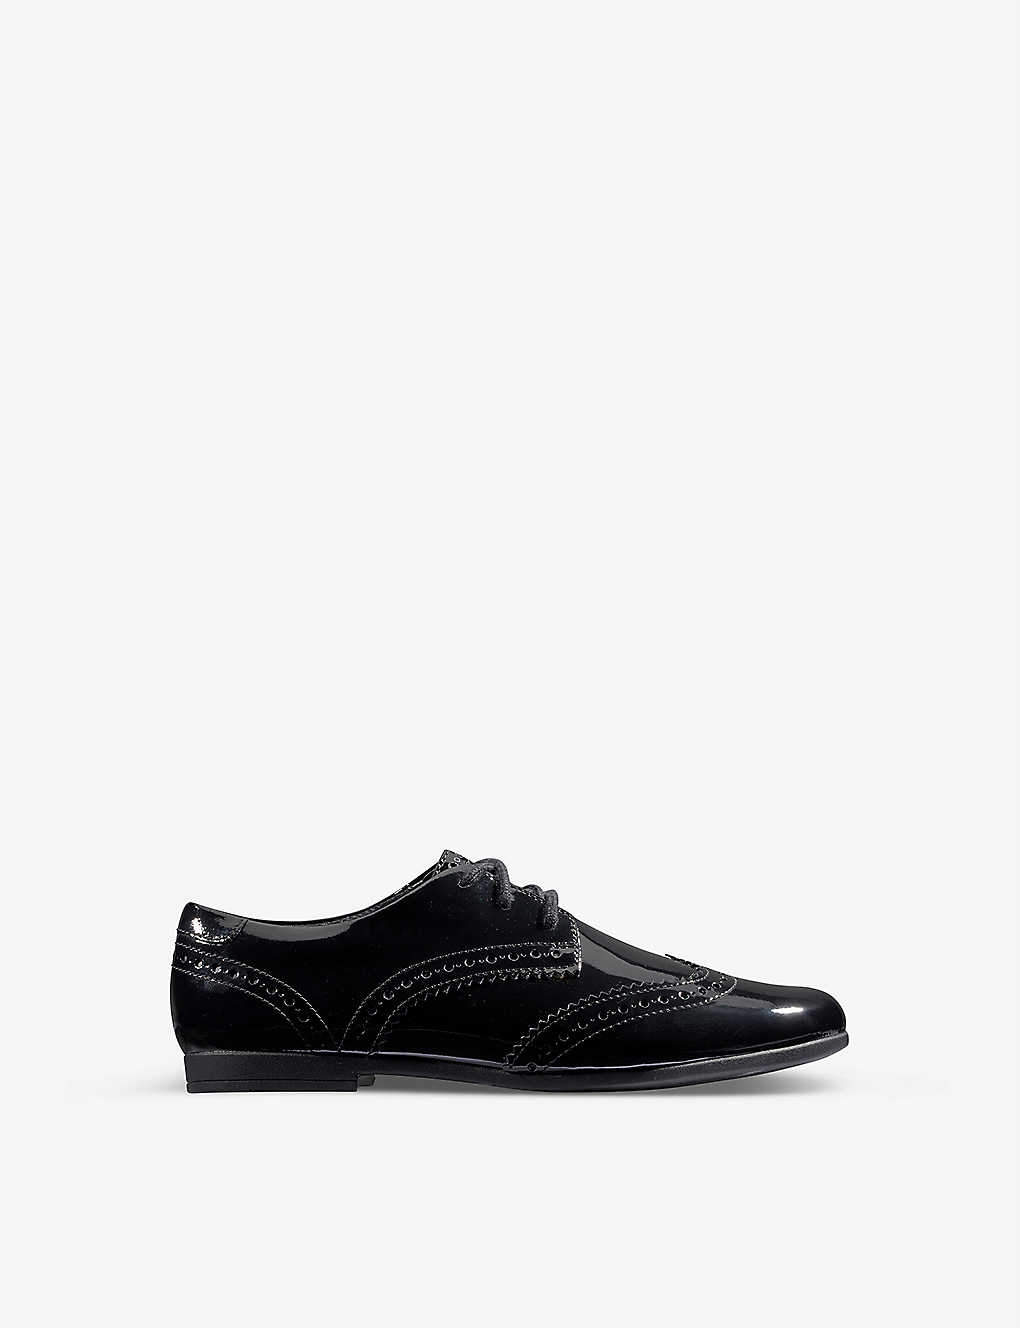 Clarks Loxham Brogue Youth Leather Shoes in Black Wide Fit Size 7